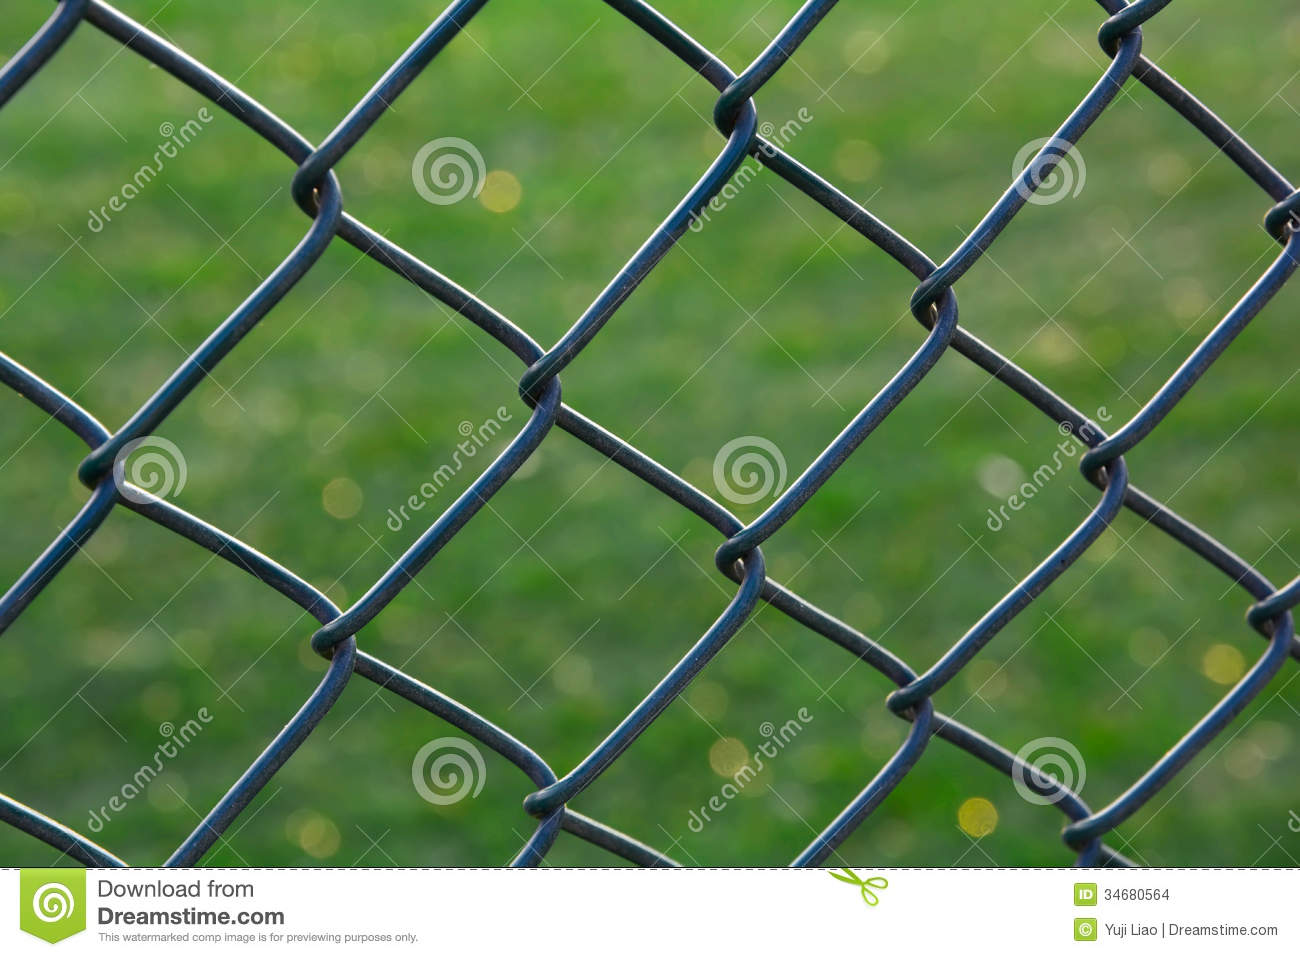 Football Court Stock Images - Image: 34680564